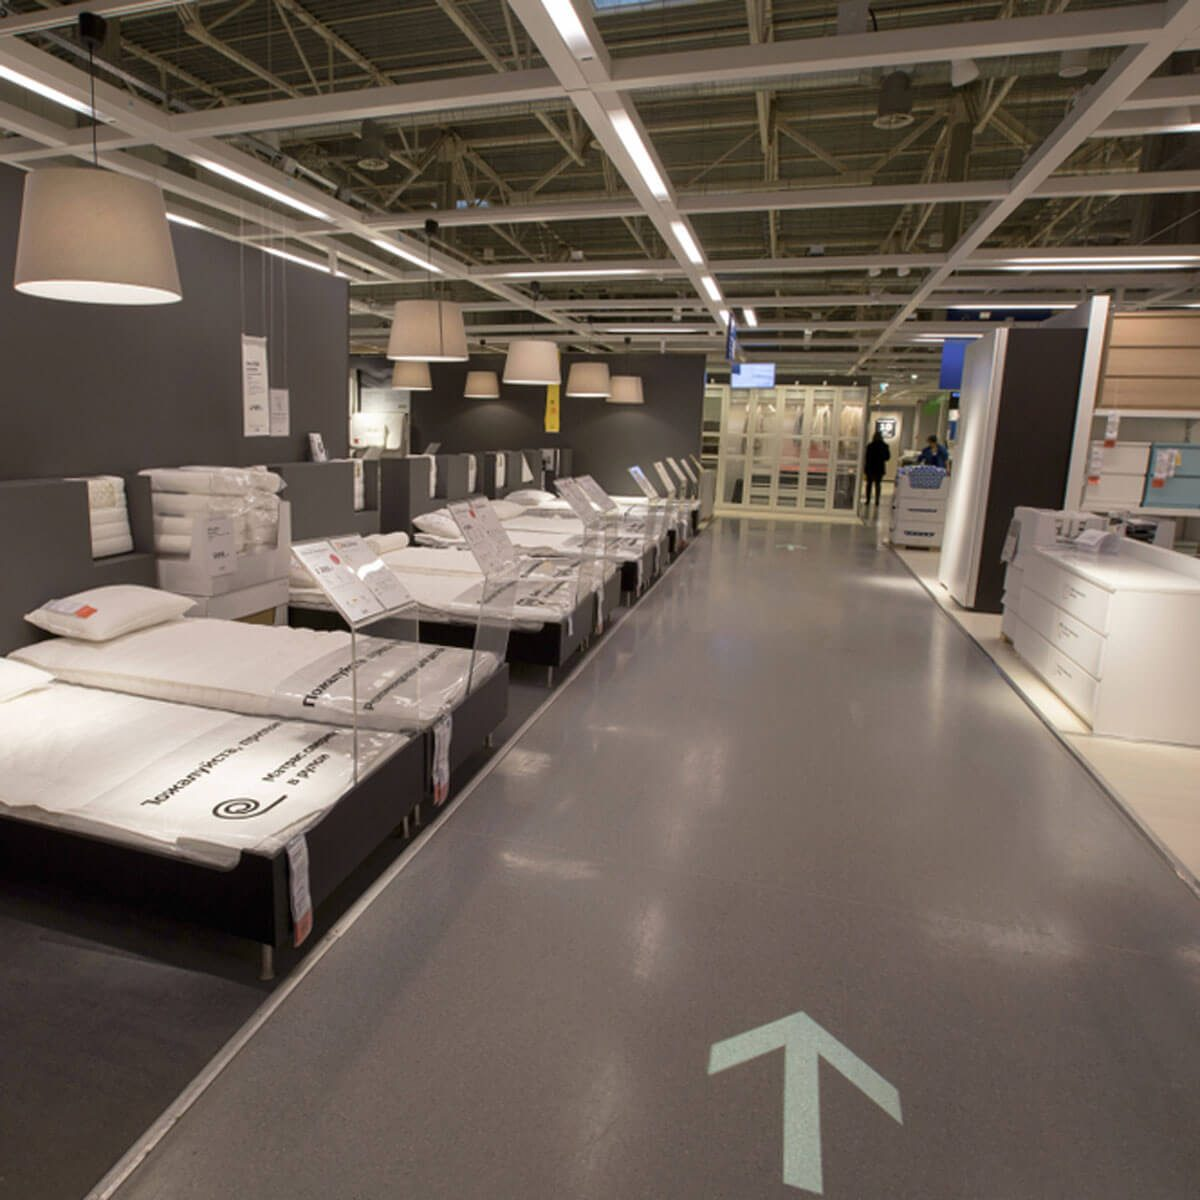 Ikea store short cuts mattresses